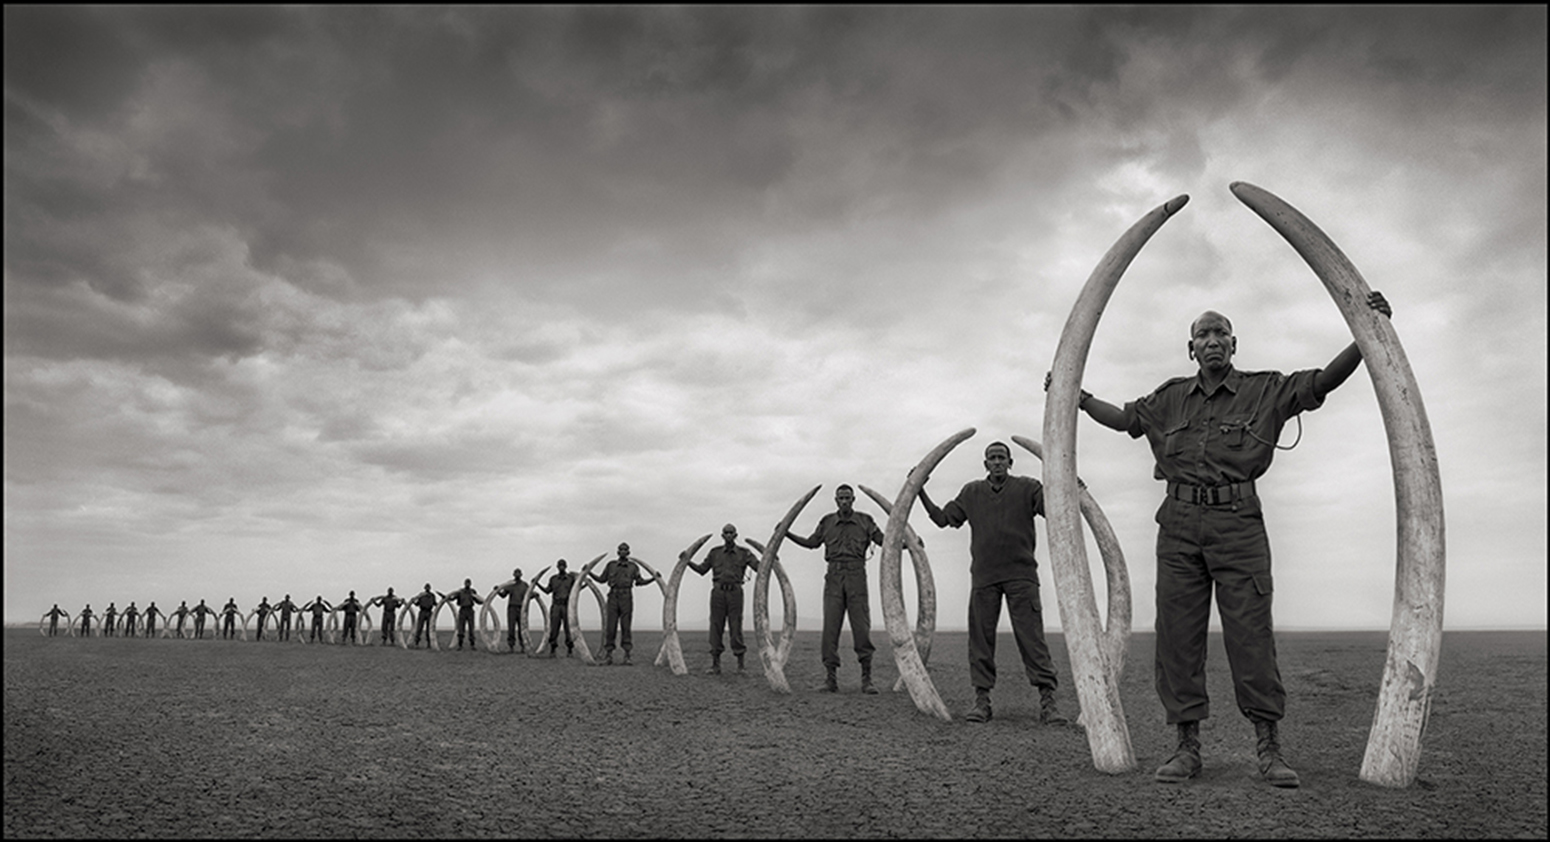 Rangers with Tusks of Killed Elephants by Nick Brandt